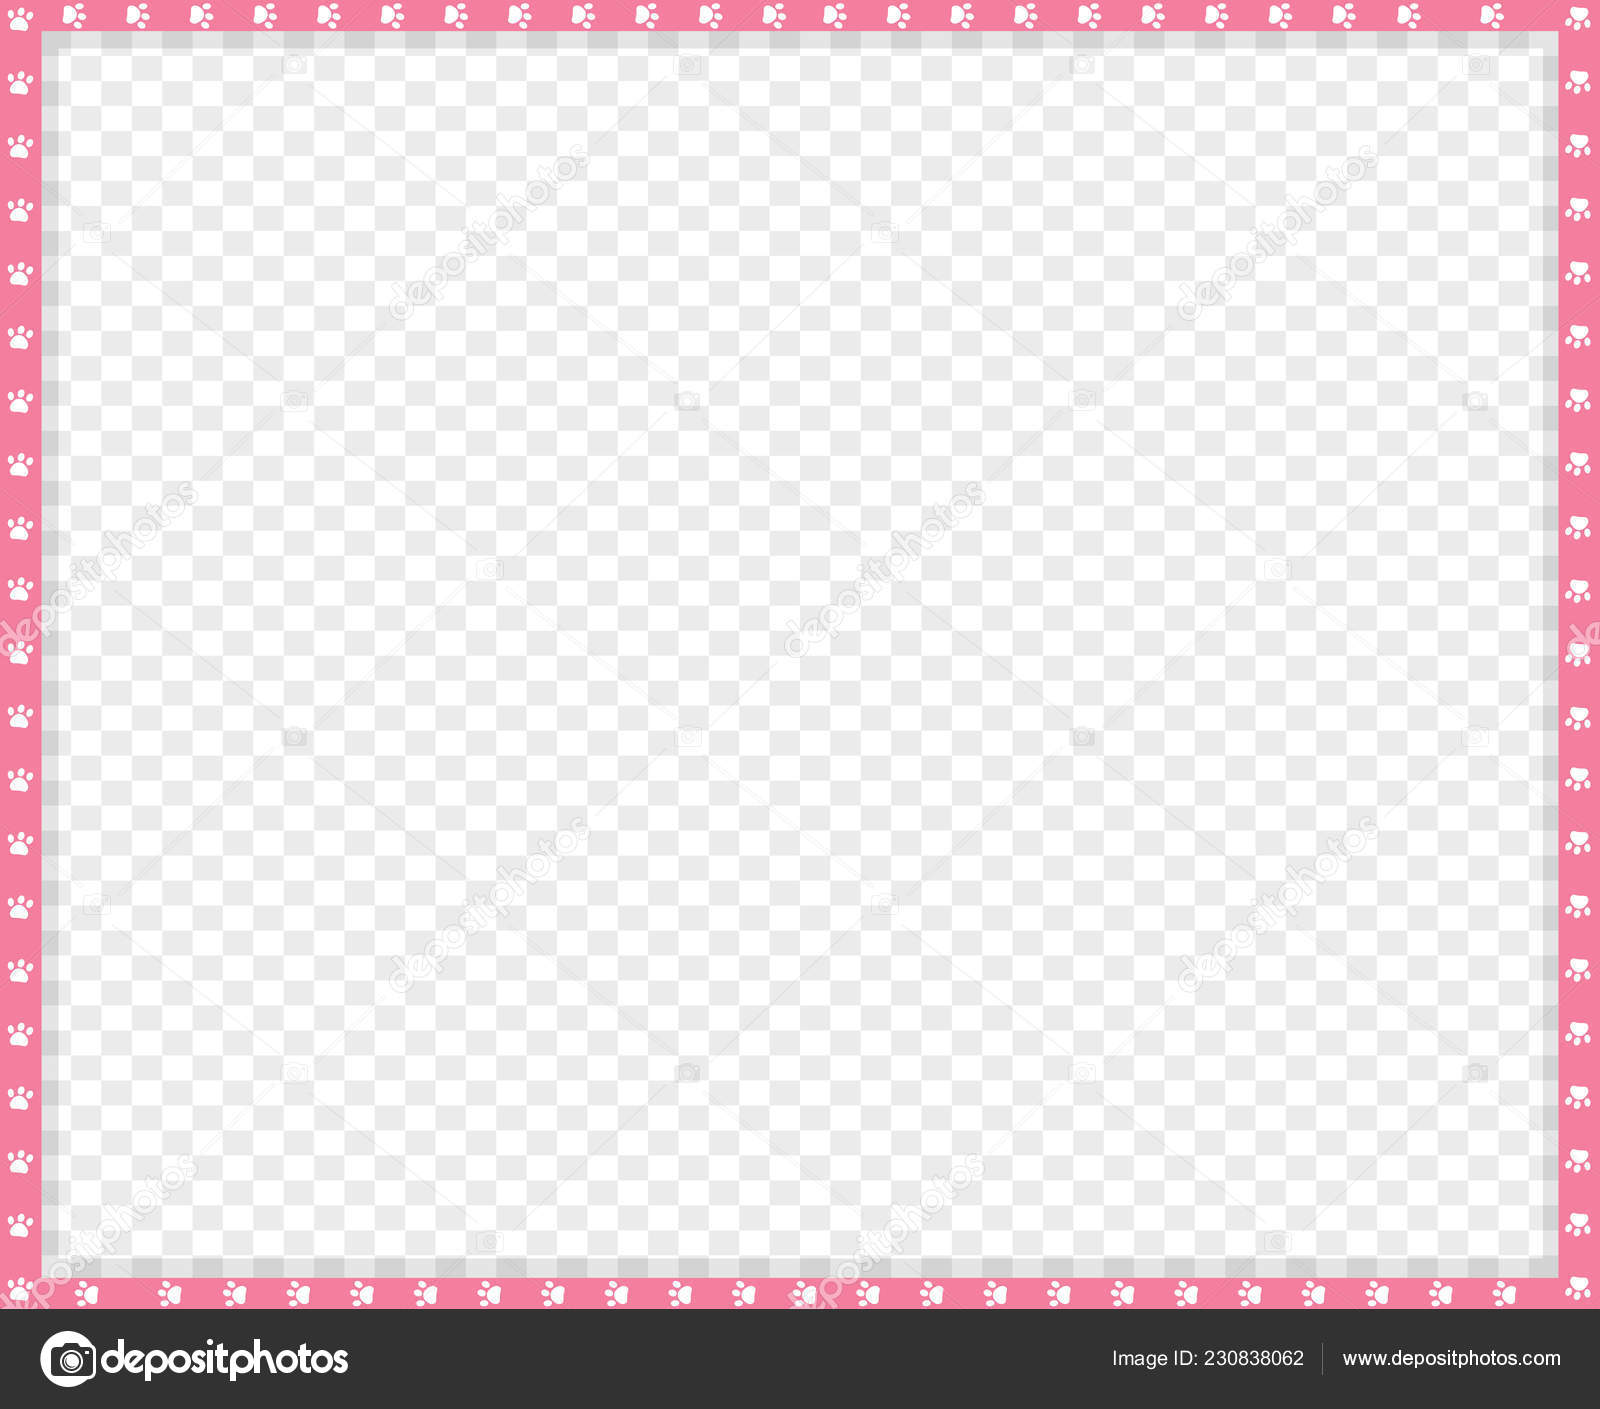 Cute Rectangle Pink White Photo Frame Made Animal Paw Print Stock